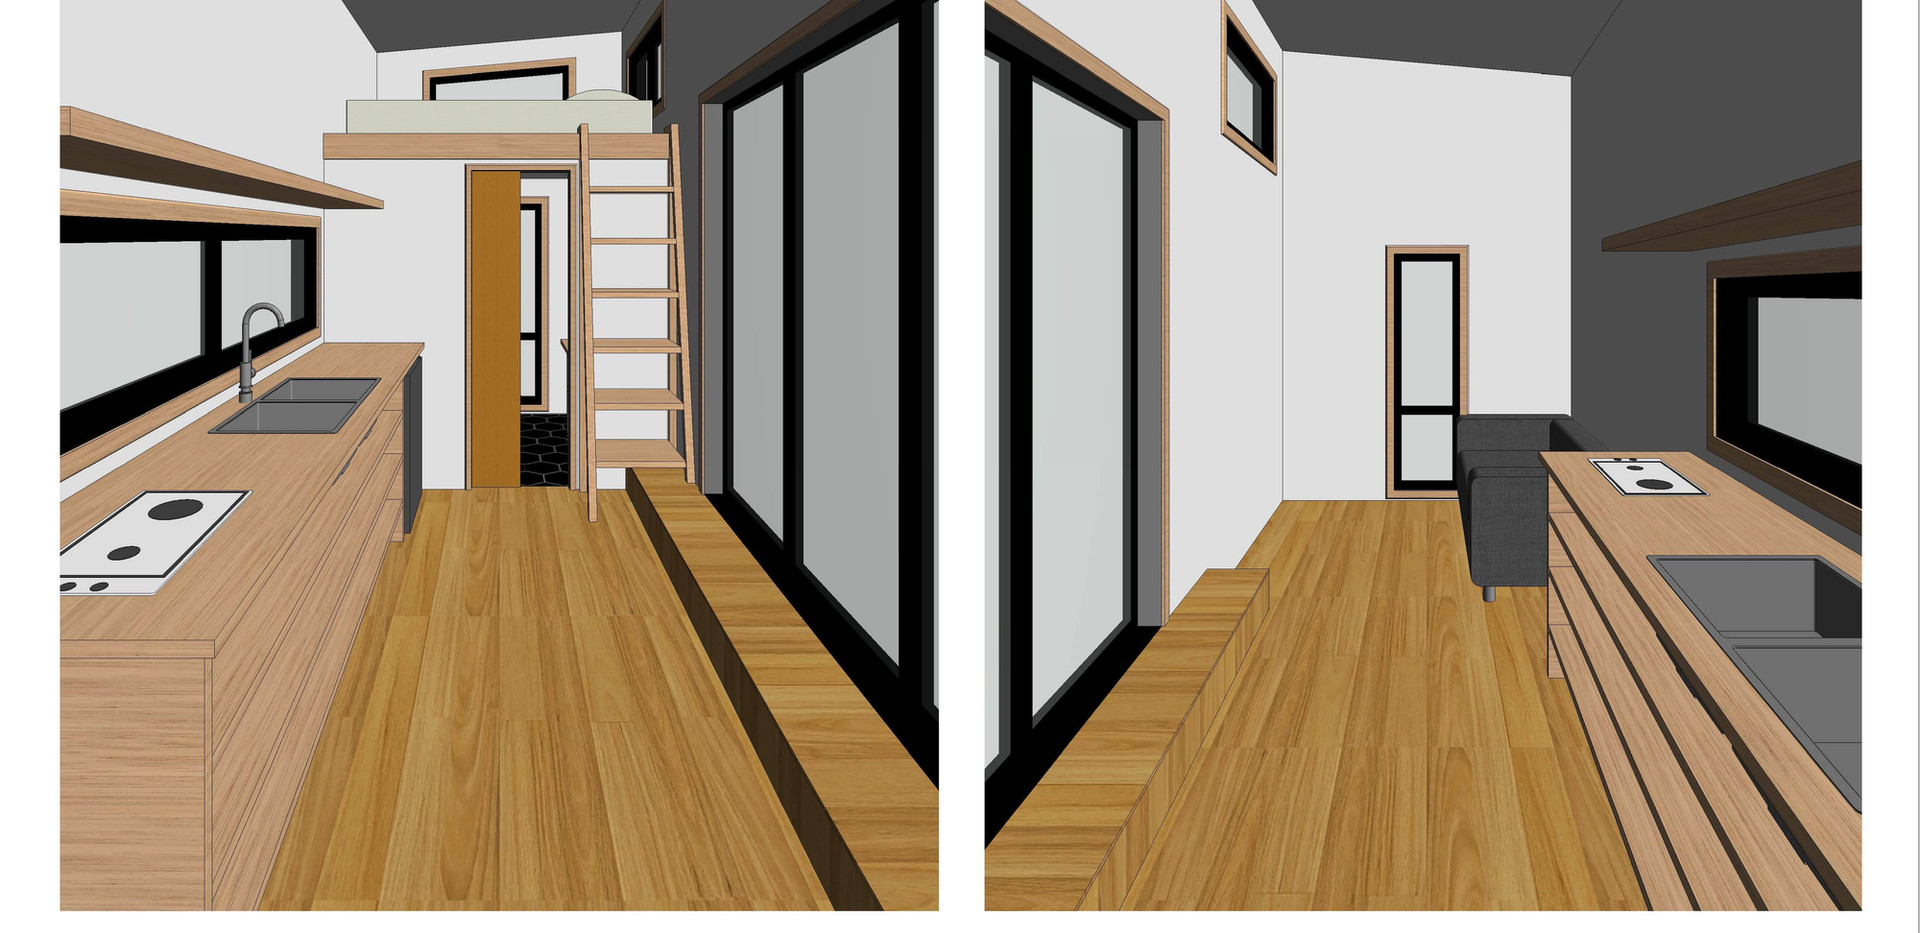 Eureka Tiny Home_002-min.jpg